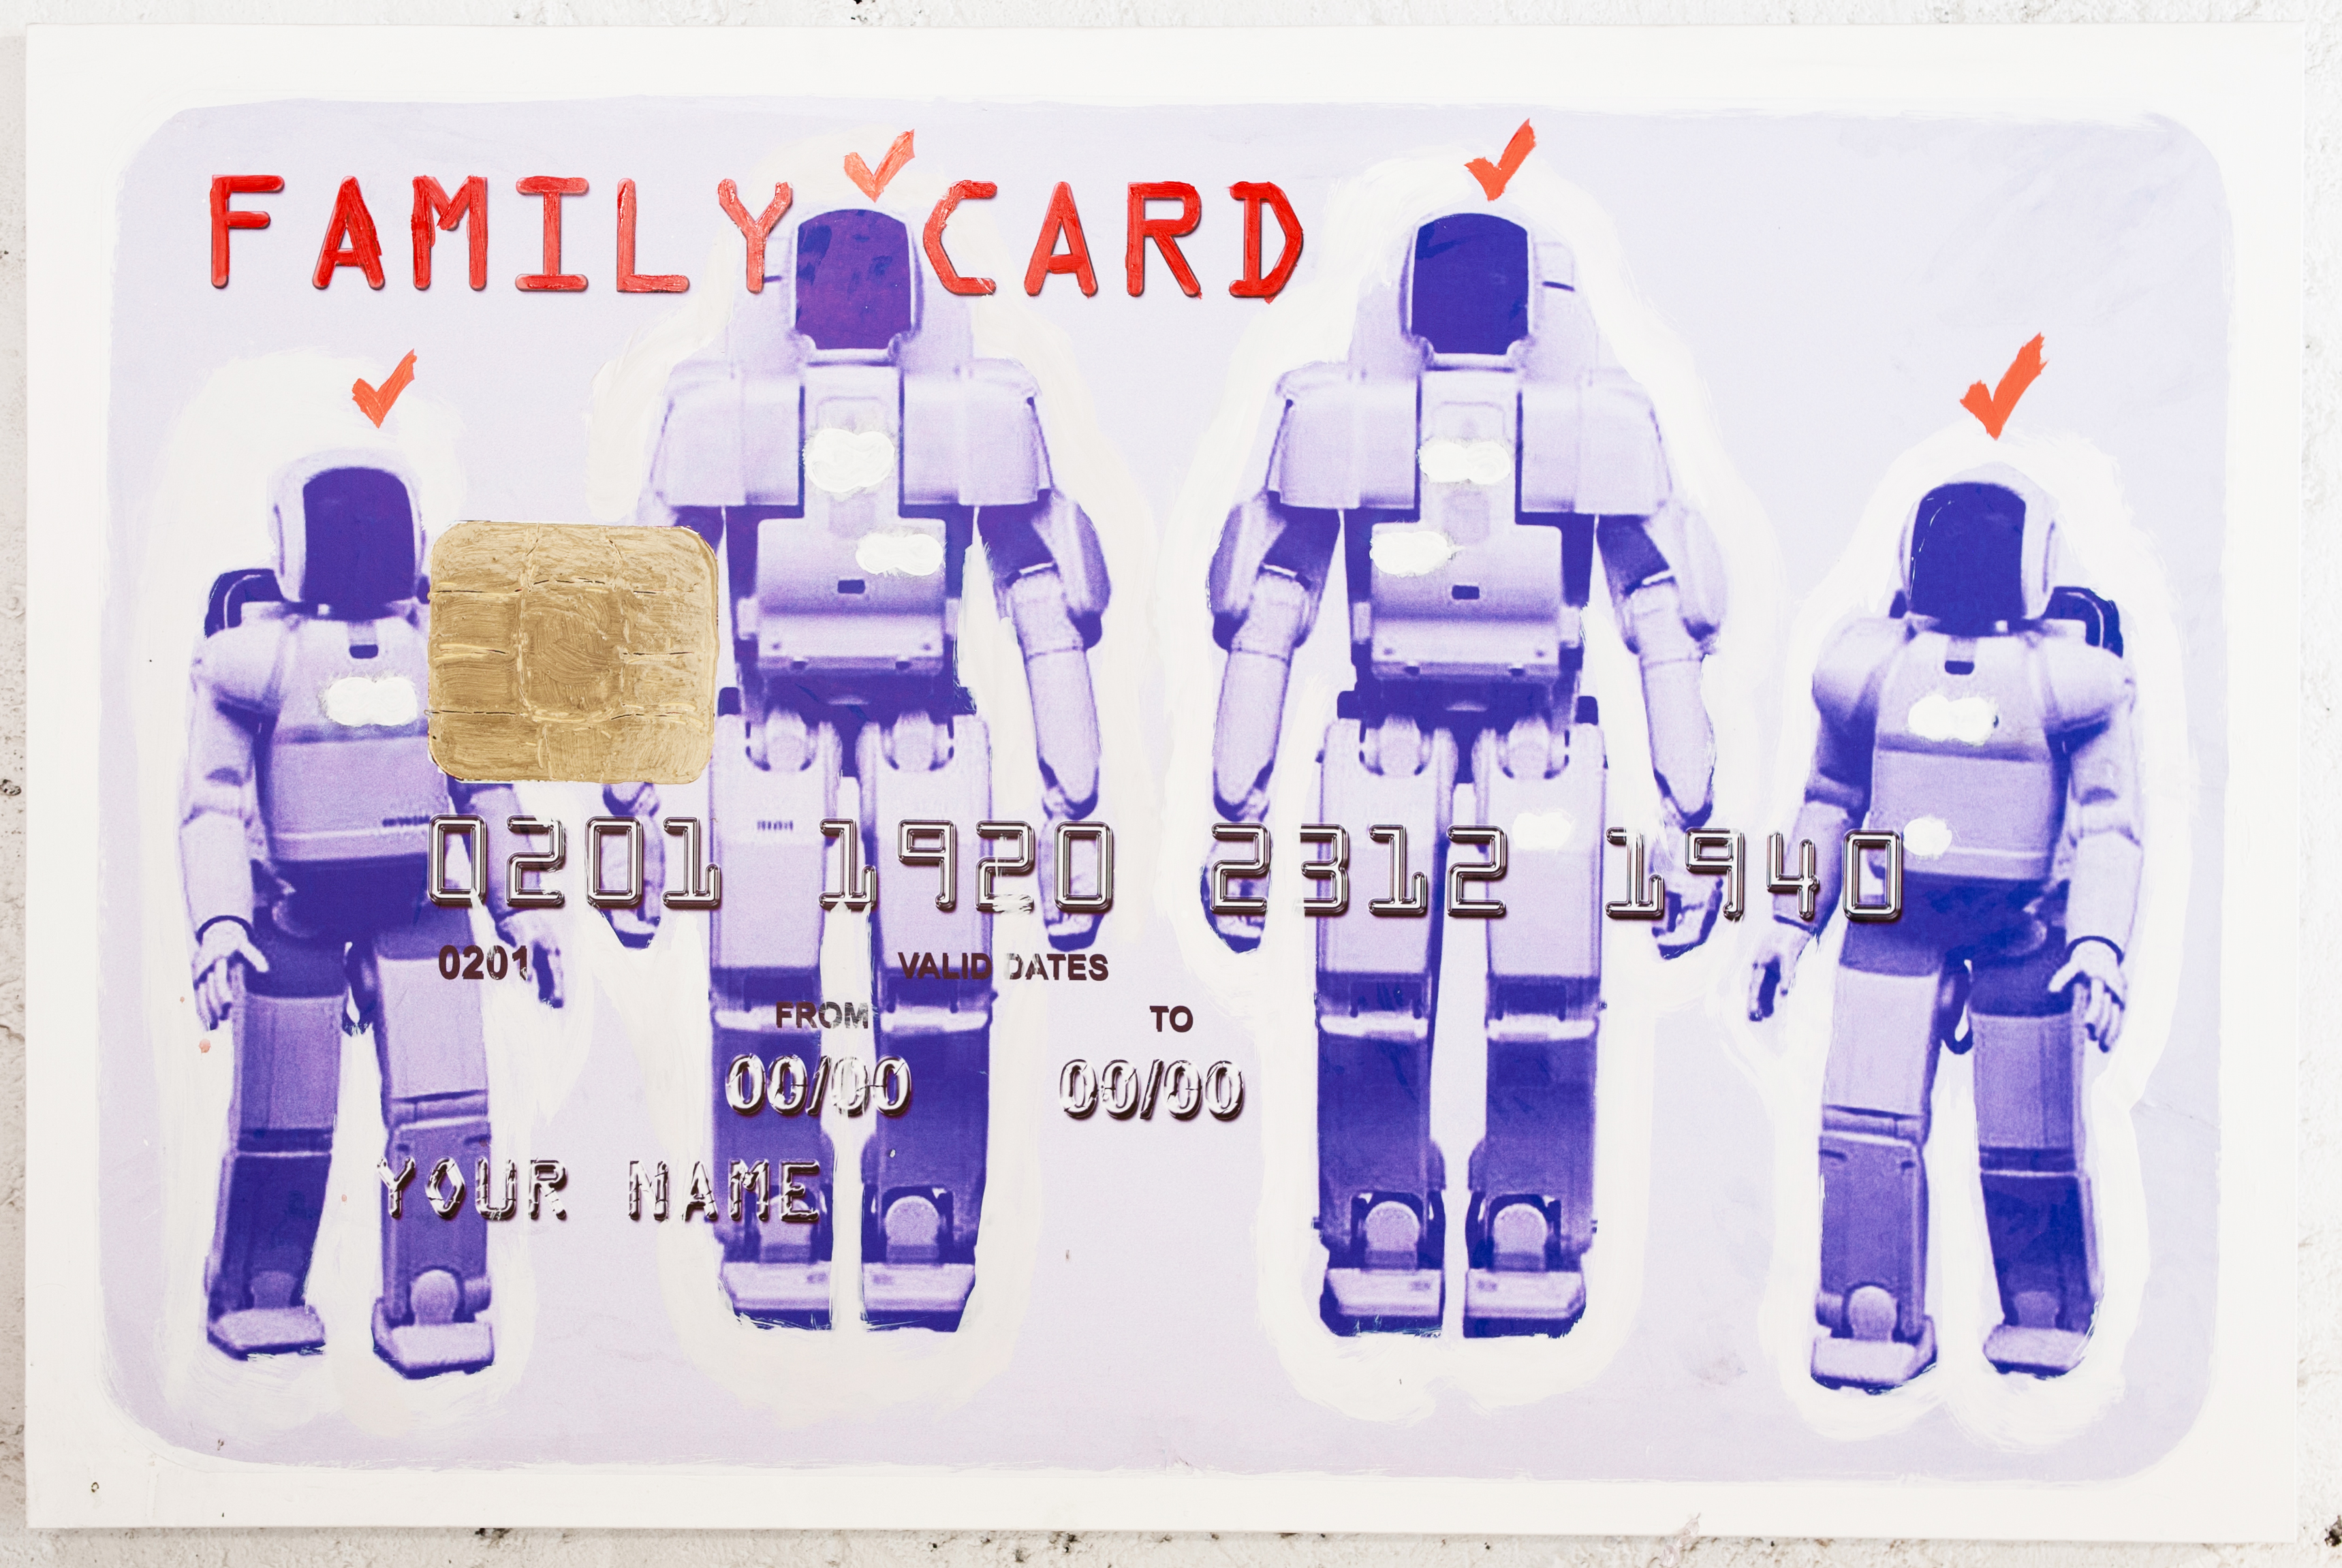 FAMILY CARD - ROBOTS, 2010-2012, Mixed media on canvas, cm 70x150